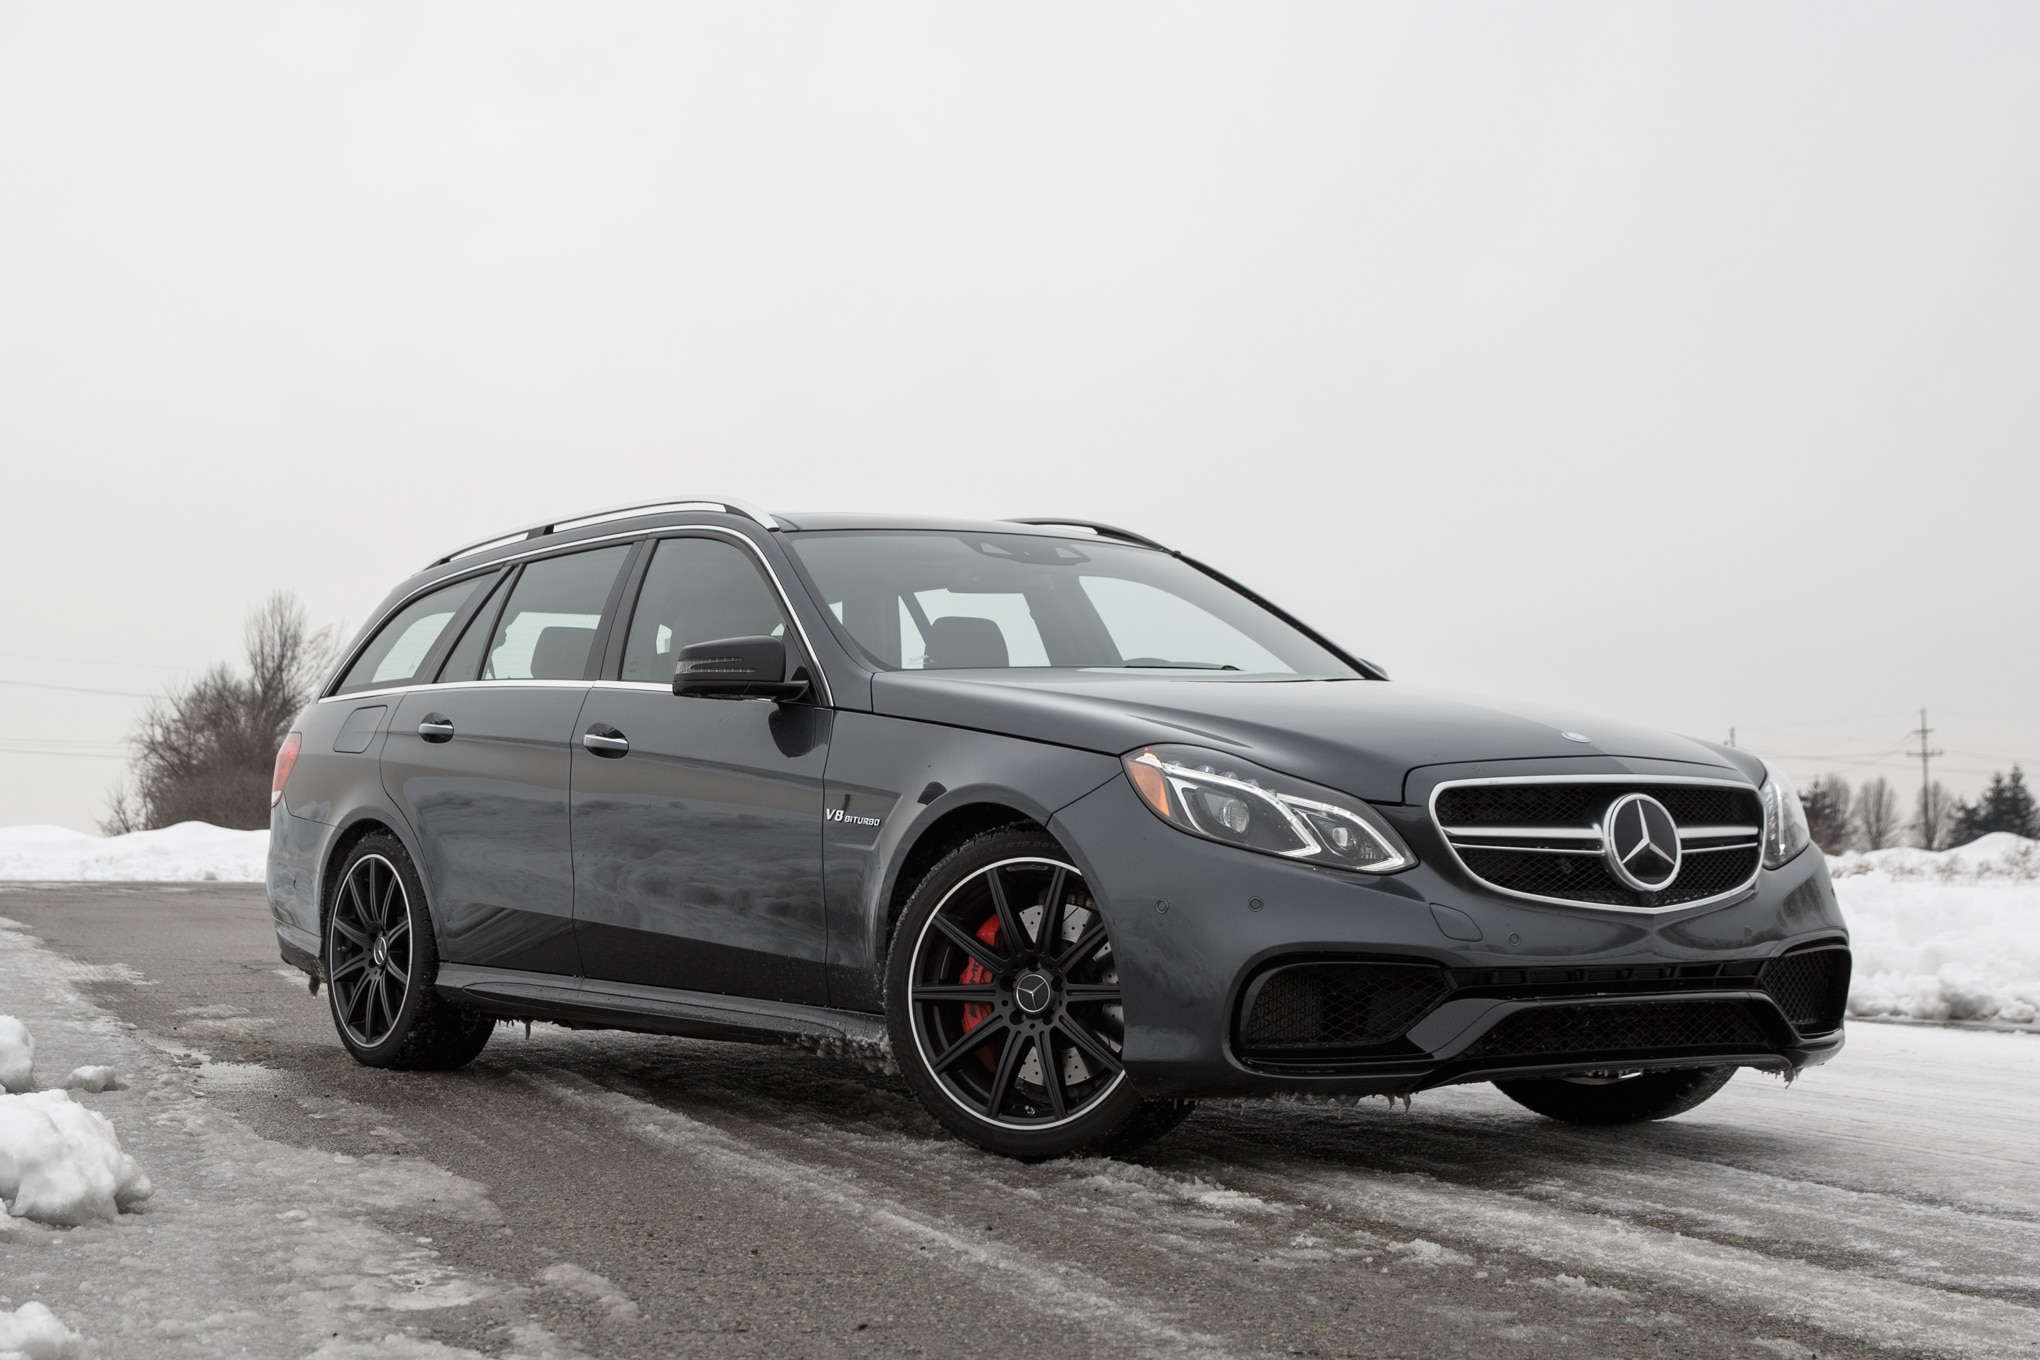 2014 mercedes benz e63 amg s model 4matic wagon around the block. Black Bedroom Furniture Sets. Home Design Ideas